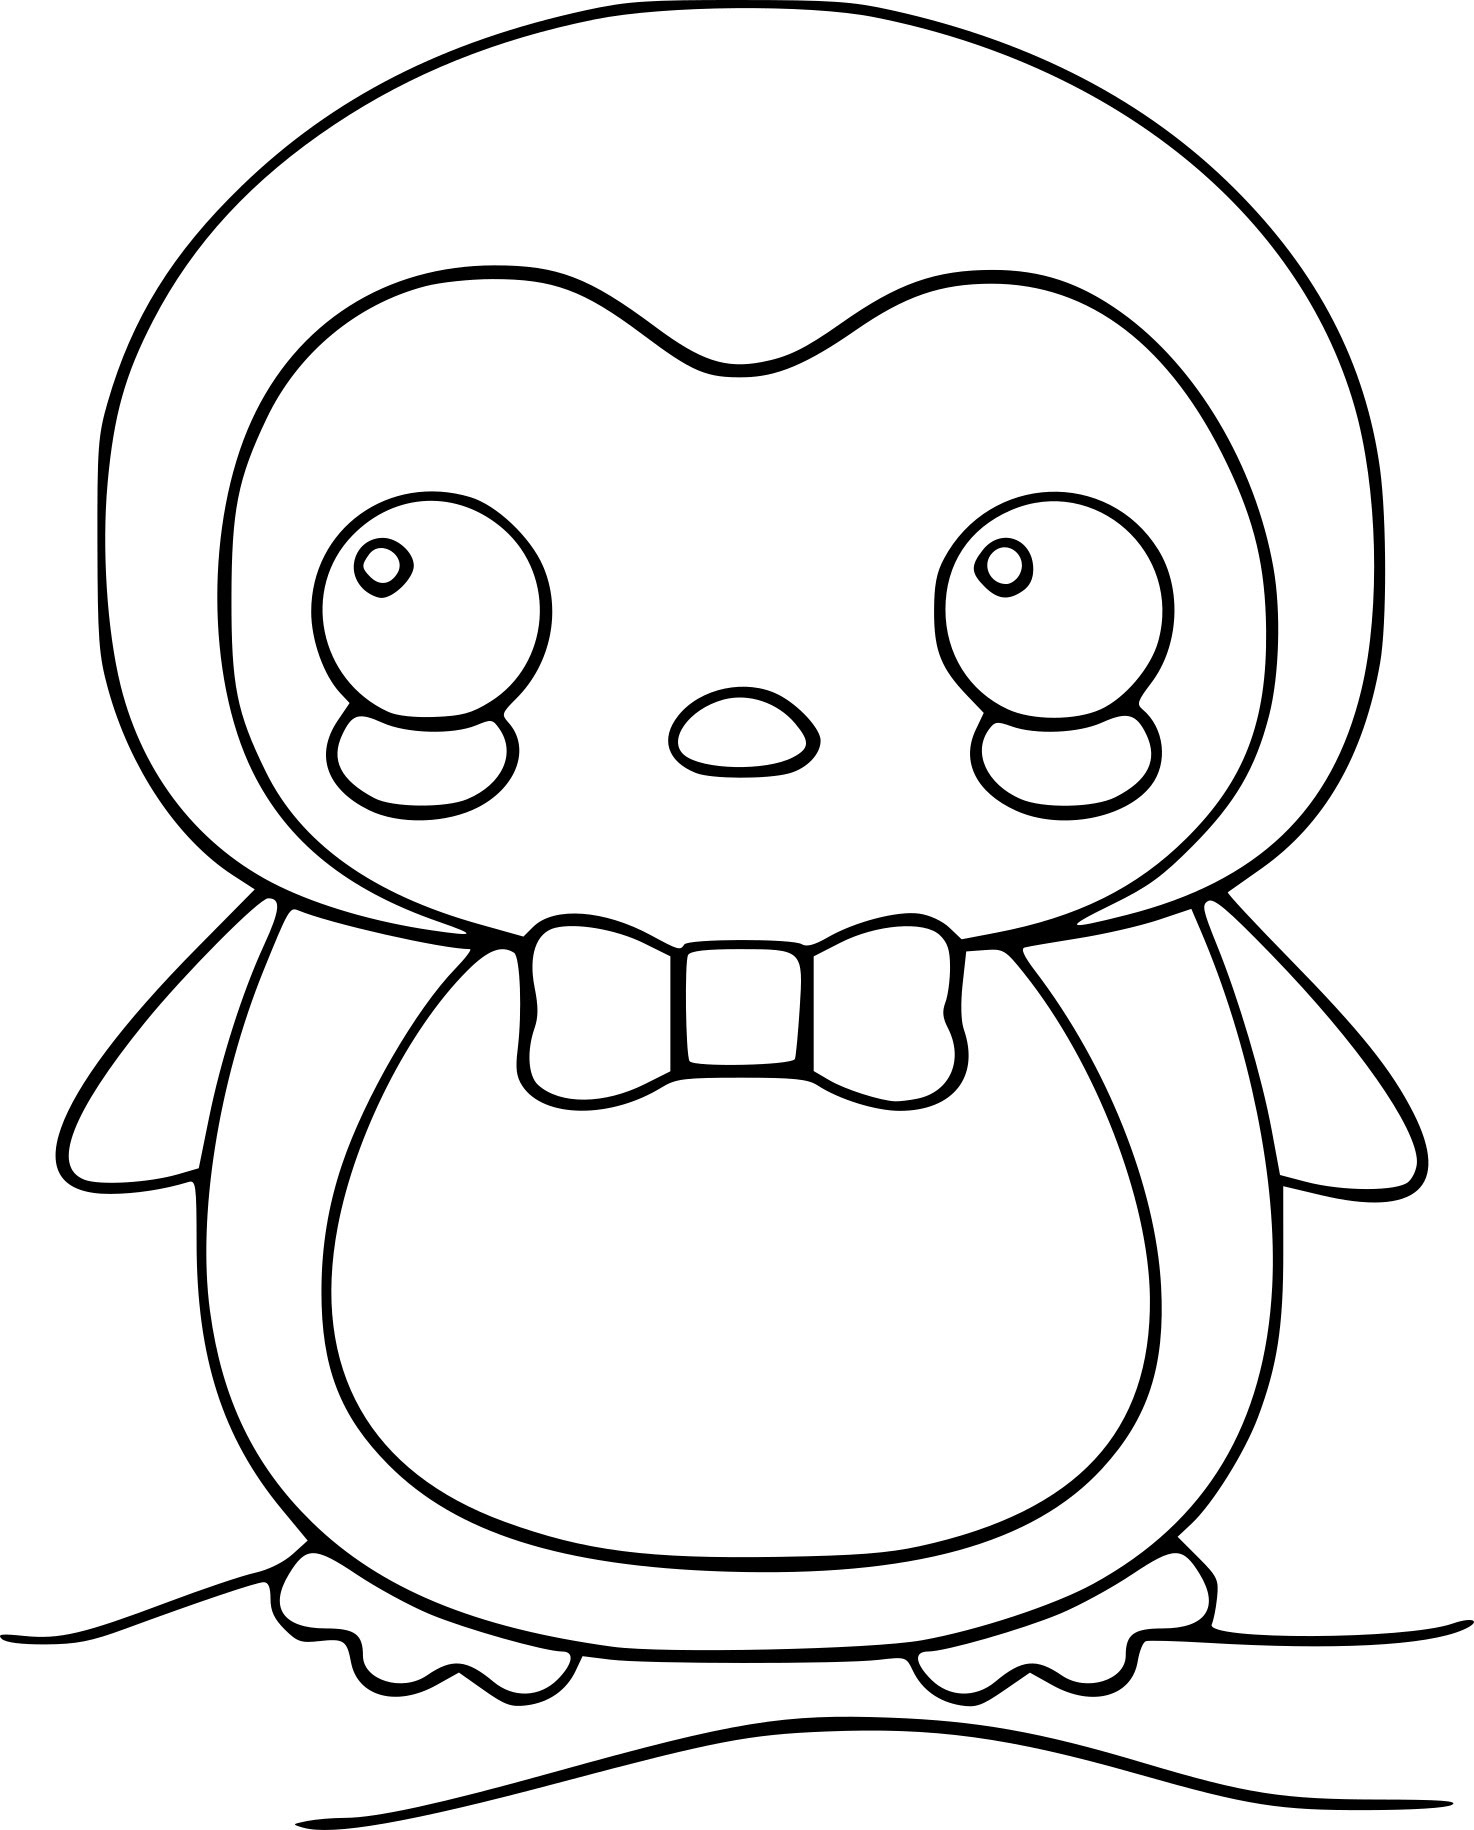 76 Free Download Coloriage Kawaii A Imprimer Worksheets For